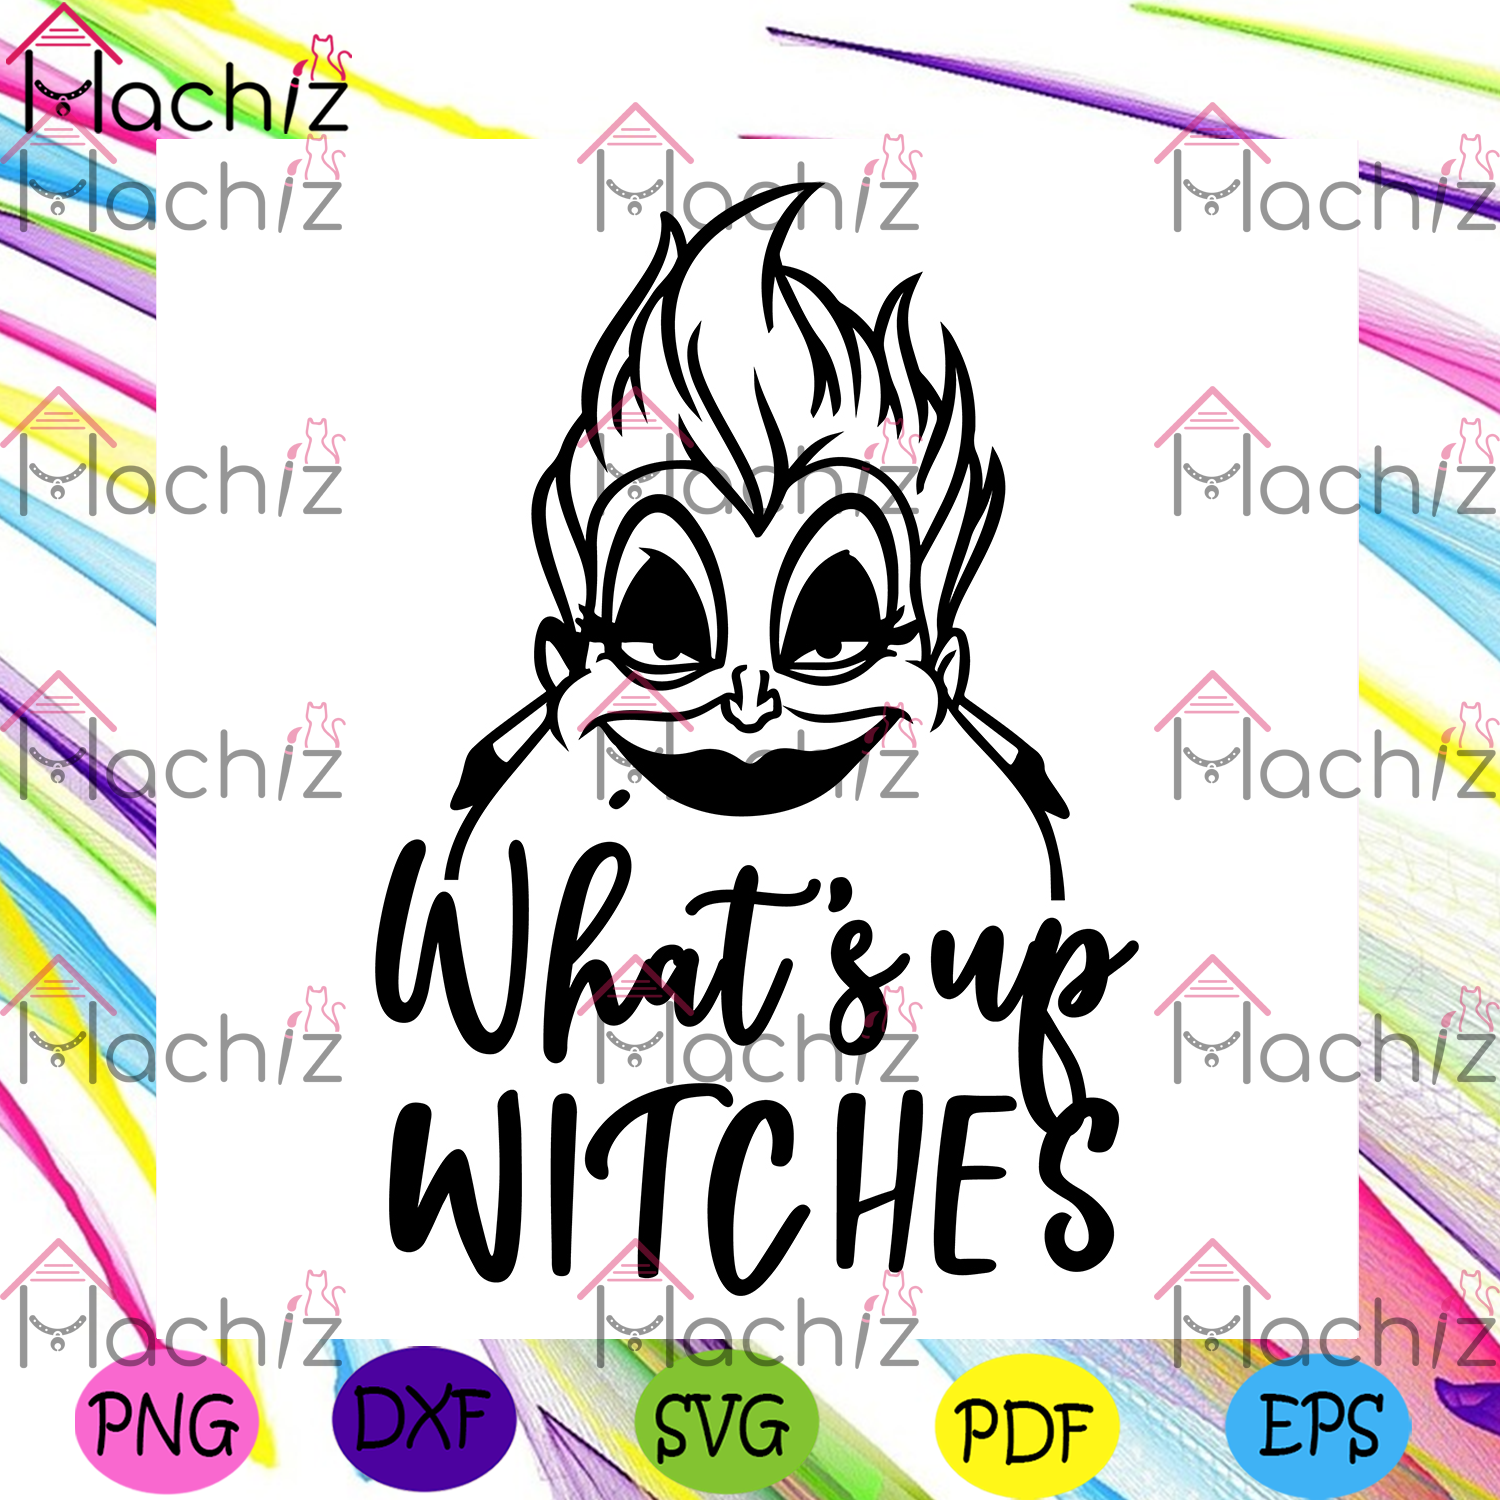 Whats Up Witches Svg, Halloween Svg, Witches Svg, Ursula Svg, Cute Witch Svg, Disney Halloween svg, Disney Svg, Evil Queen Svg, Bad Witch Svg, Halloween Day, Halloween Gift, Halloween Party